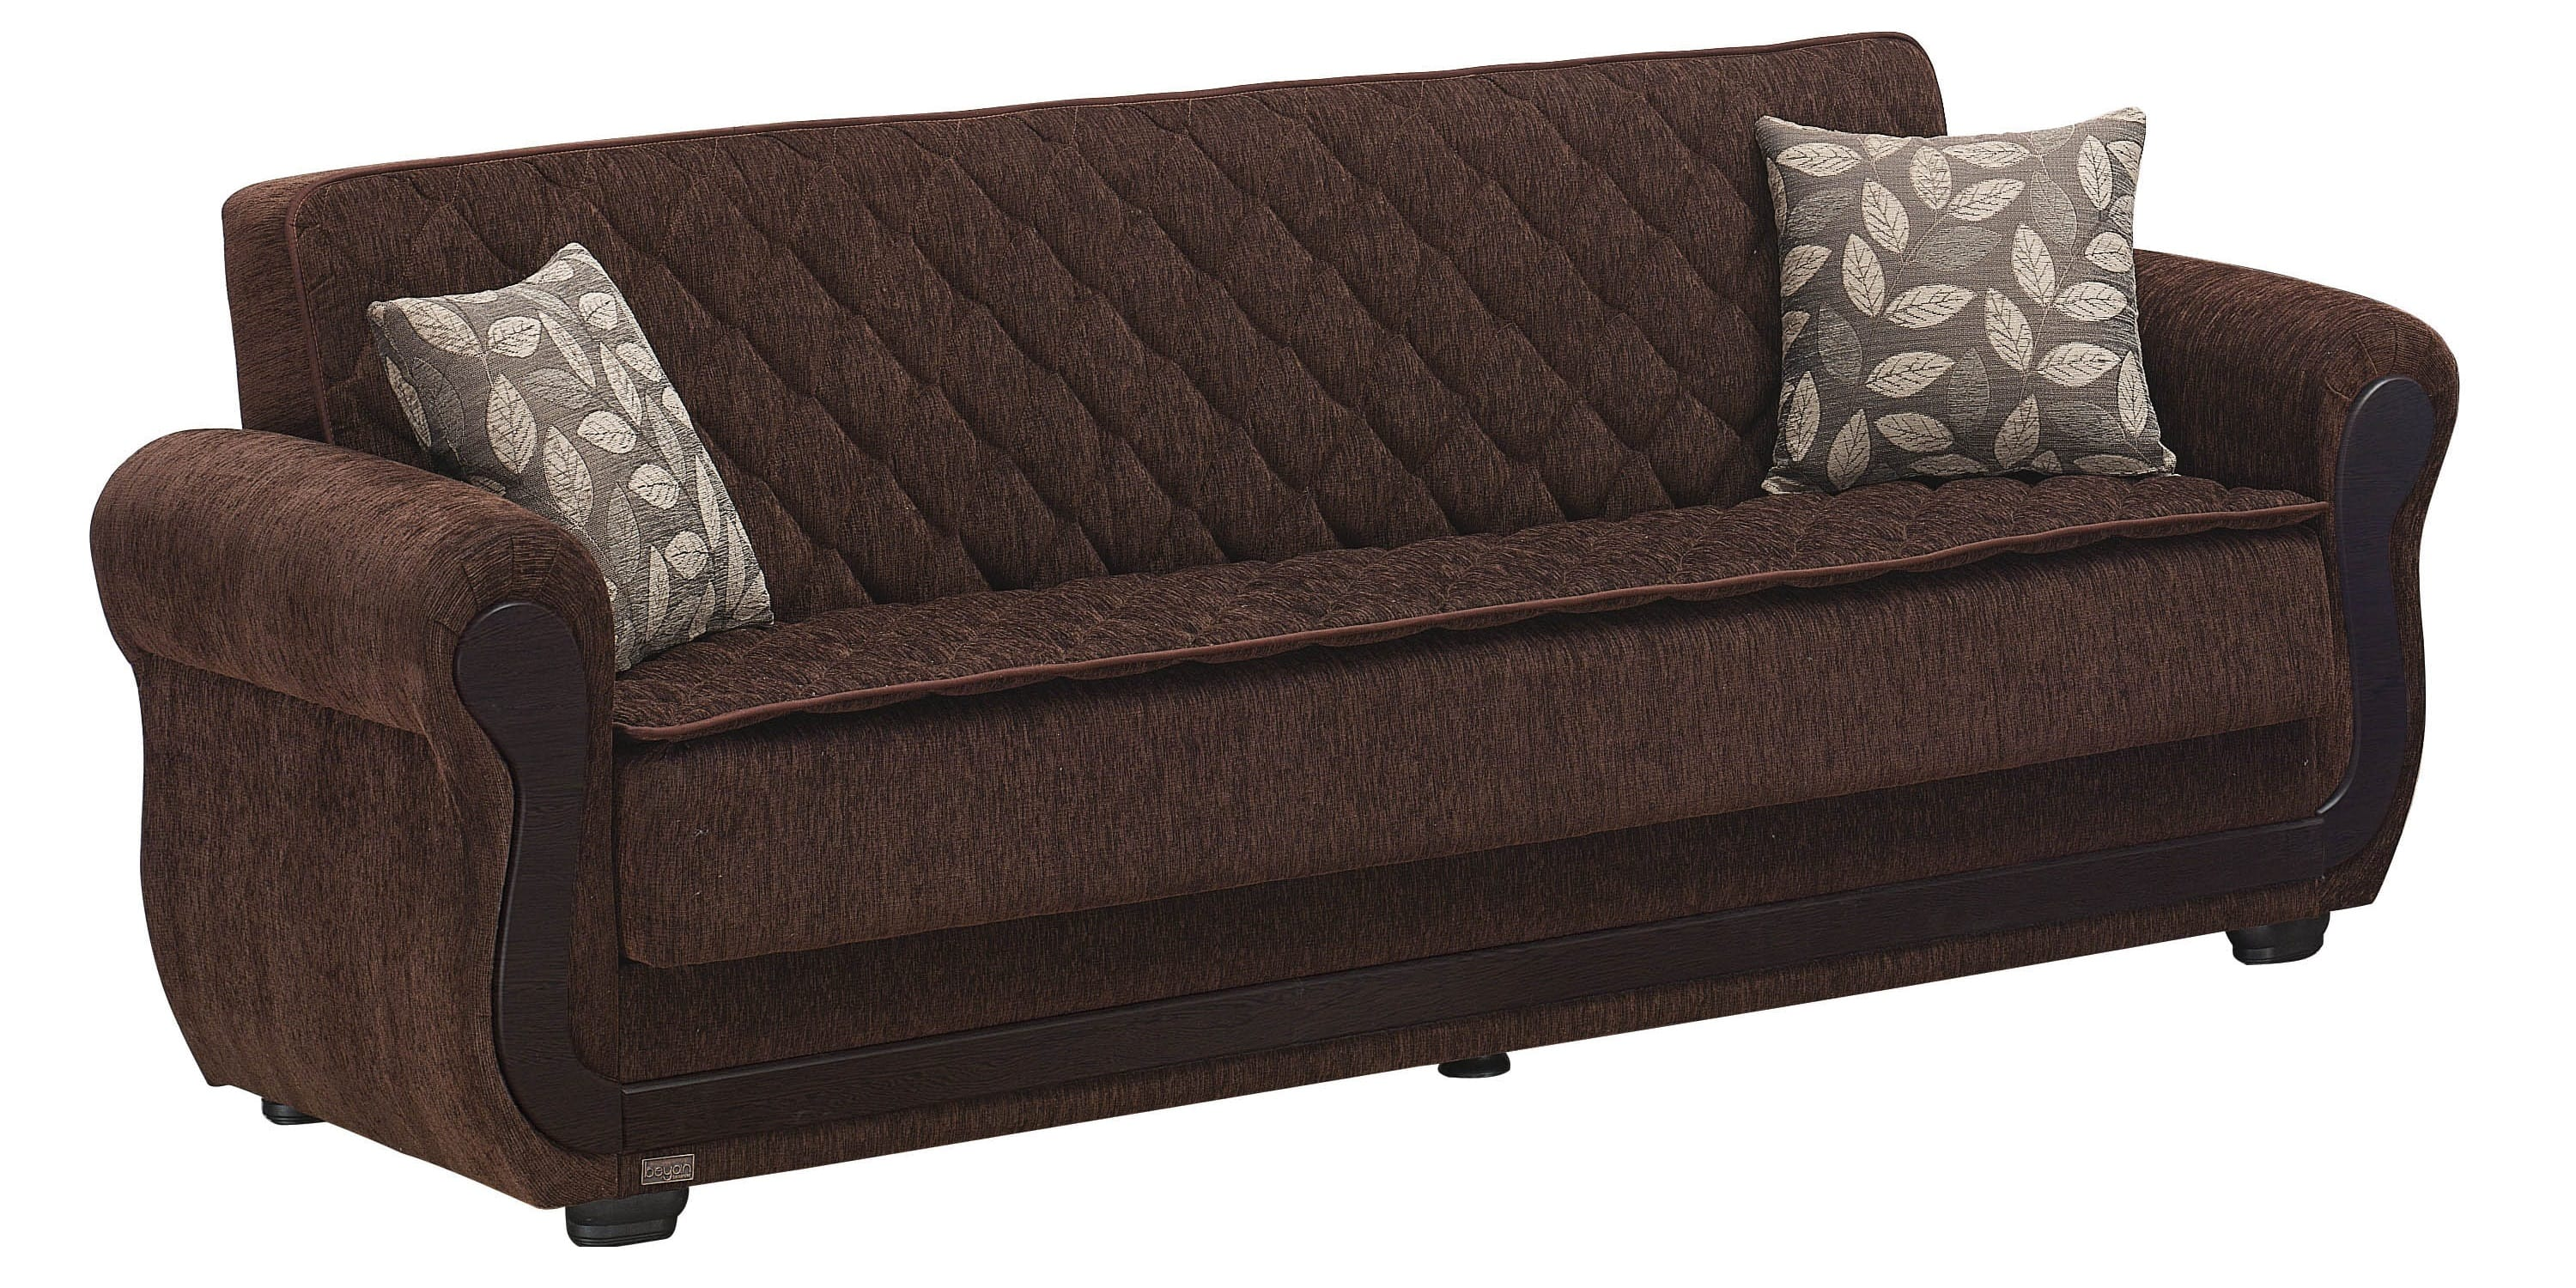 Sunrise Sofa Bed by Empire Furniture USA